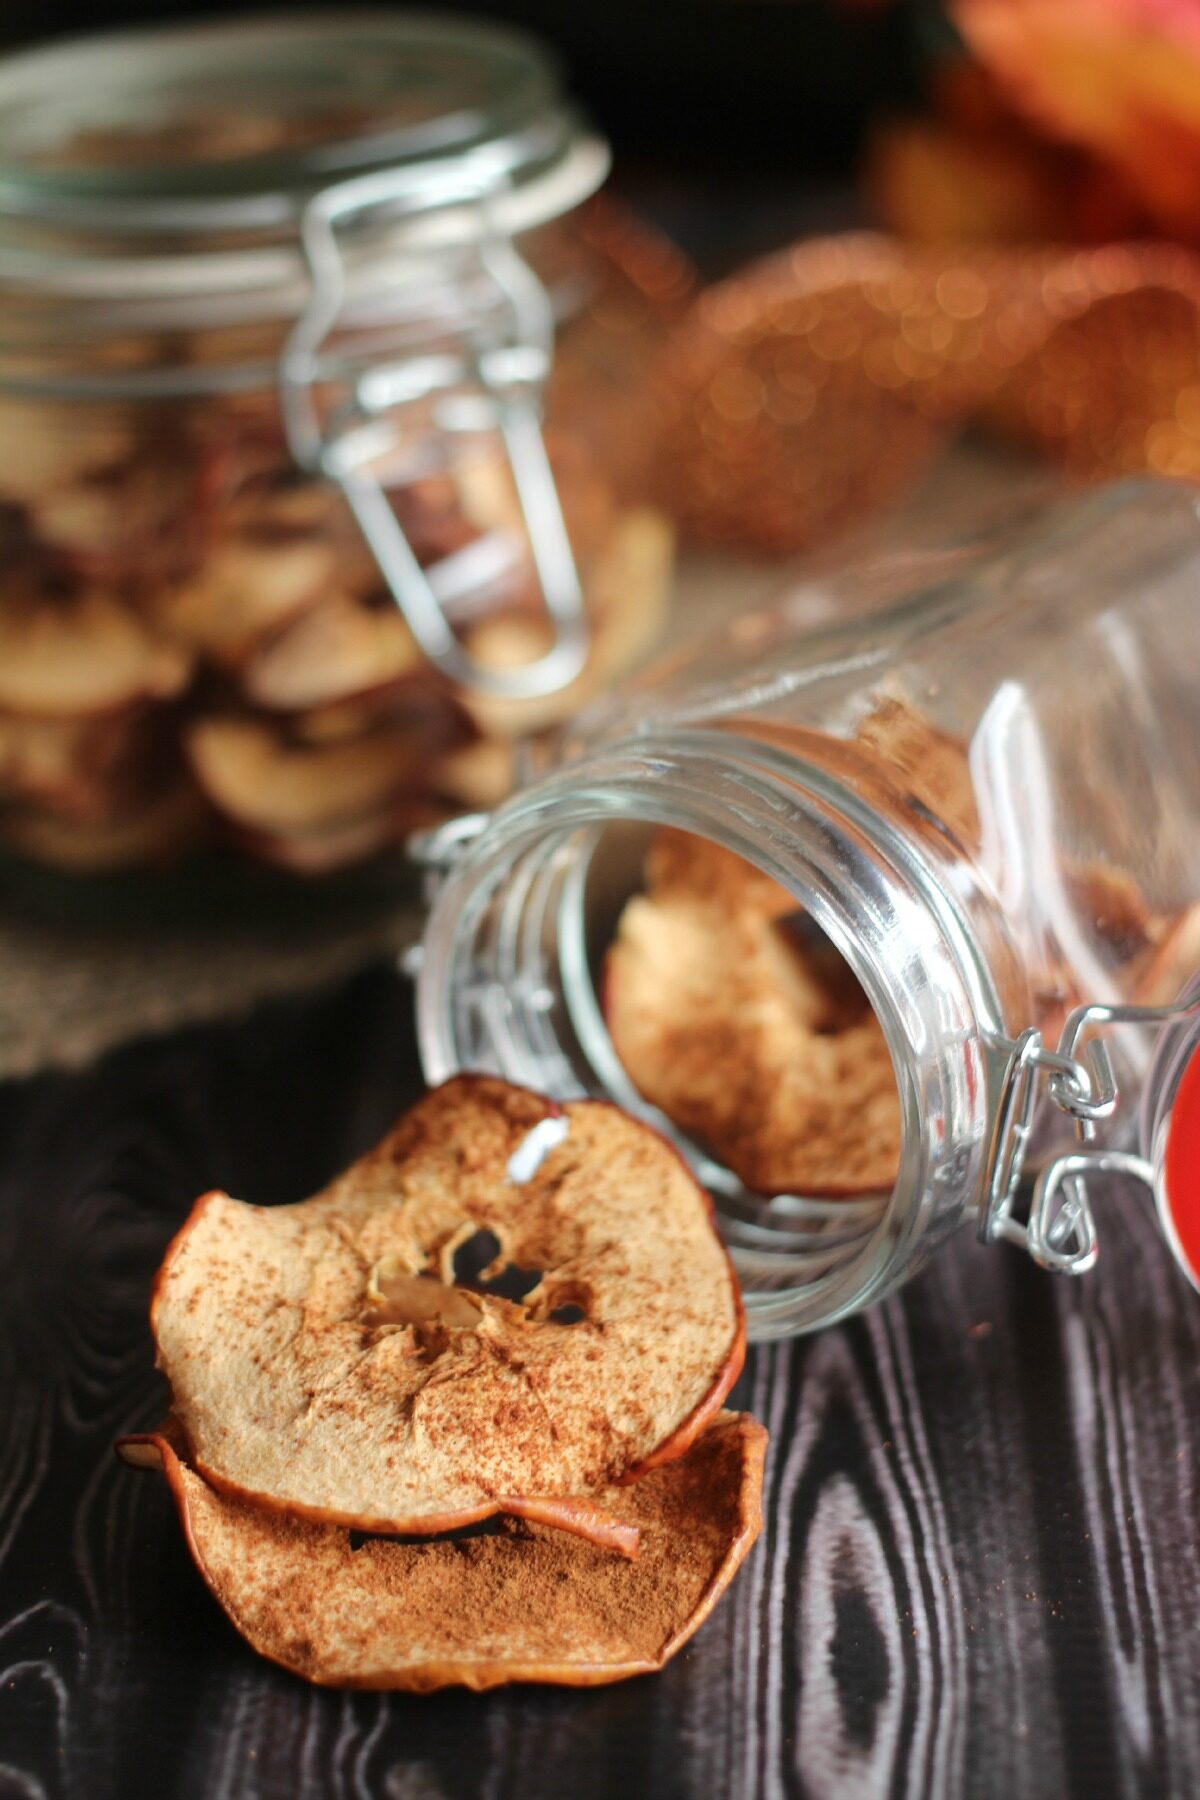 Homemade oven dried apples recipe. A delicious, healthy and easy to make snack that are dried slowly in the oven with a sprinkle of cinnamon.